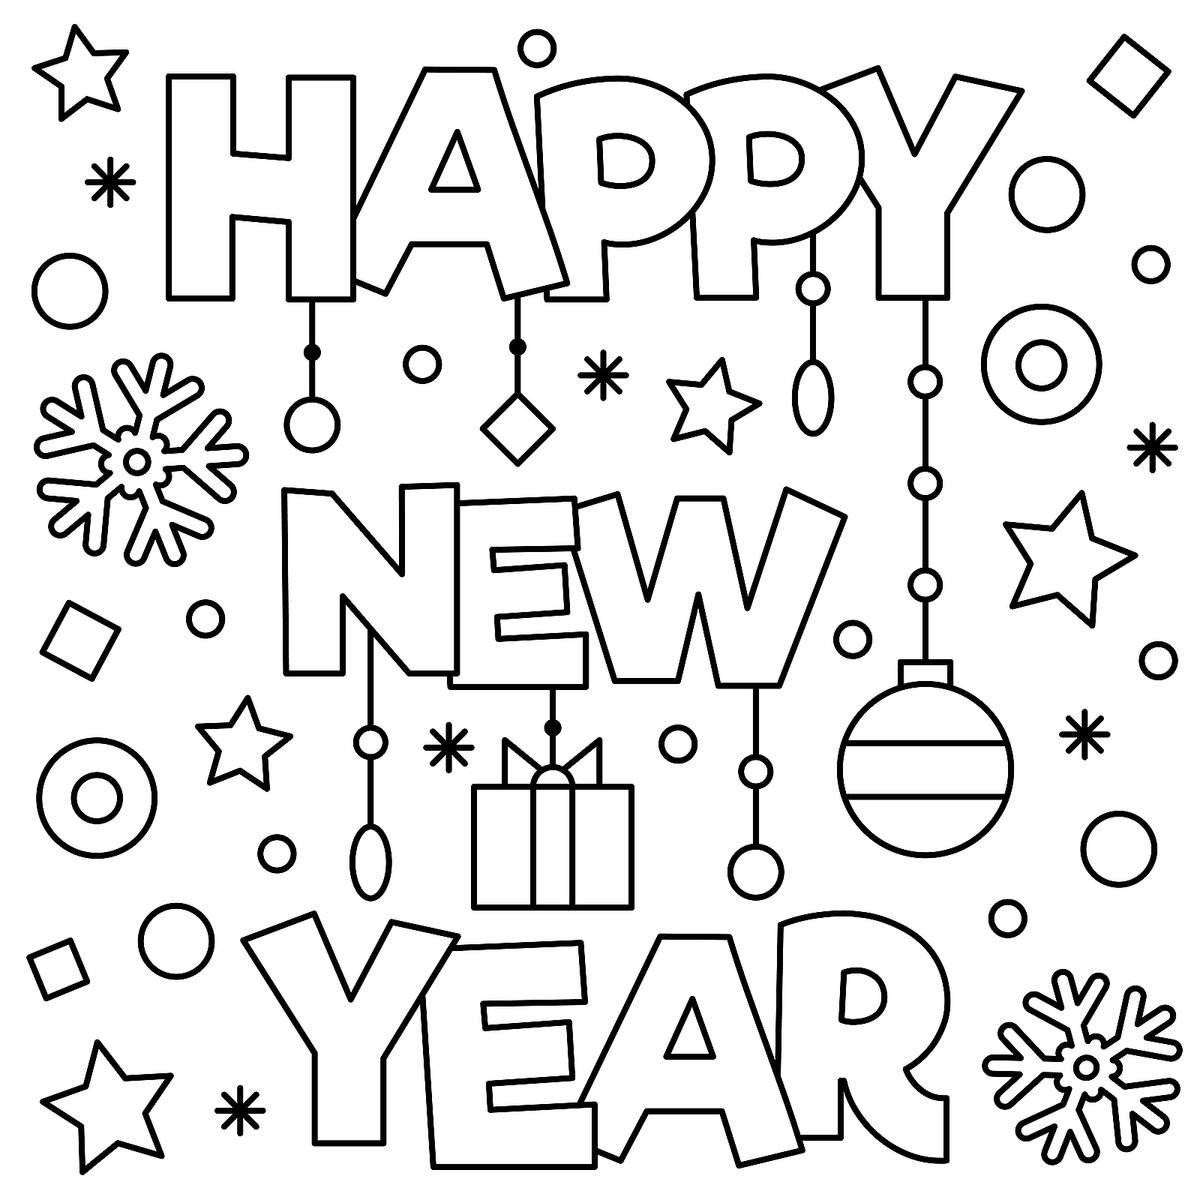 January Coloring Pages Free Printable  New Year & January Coloring Pages Printable Fun to Help